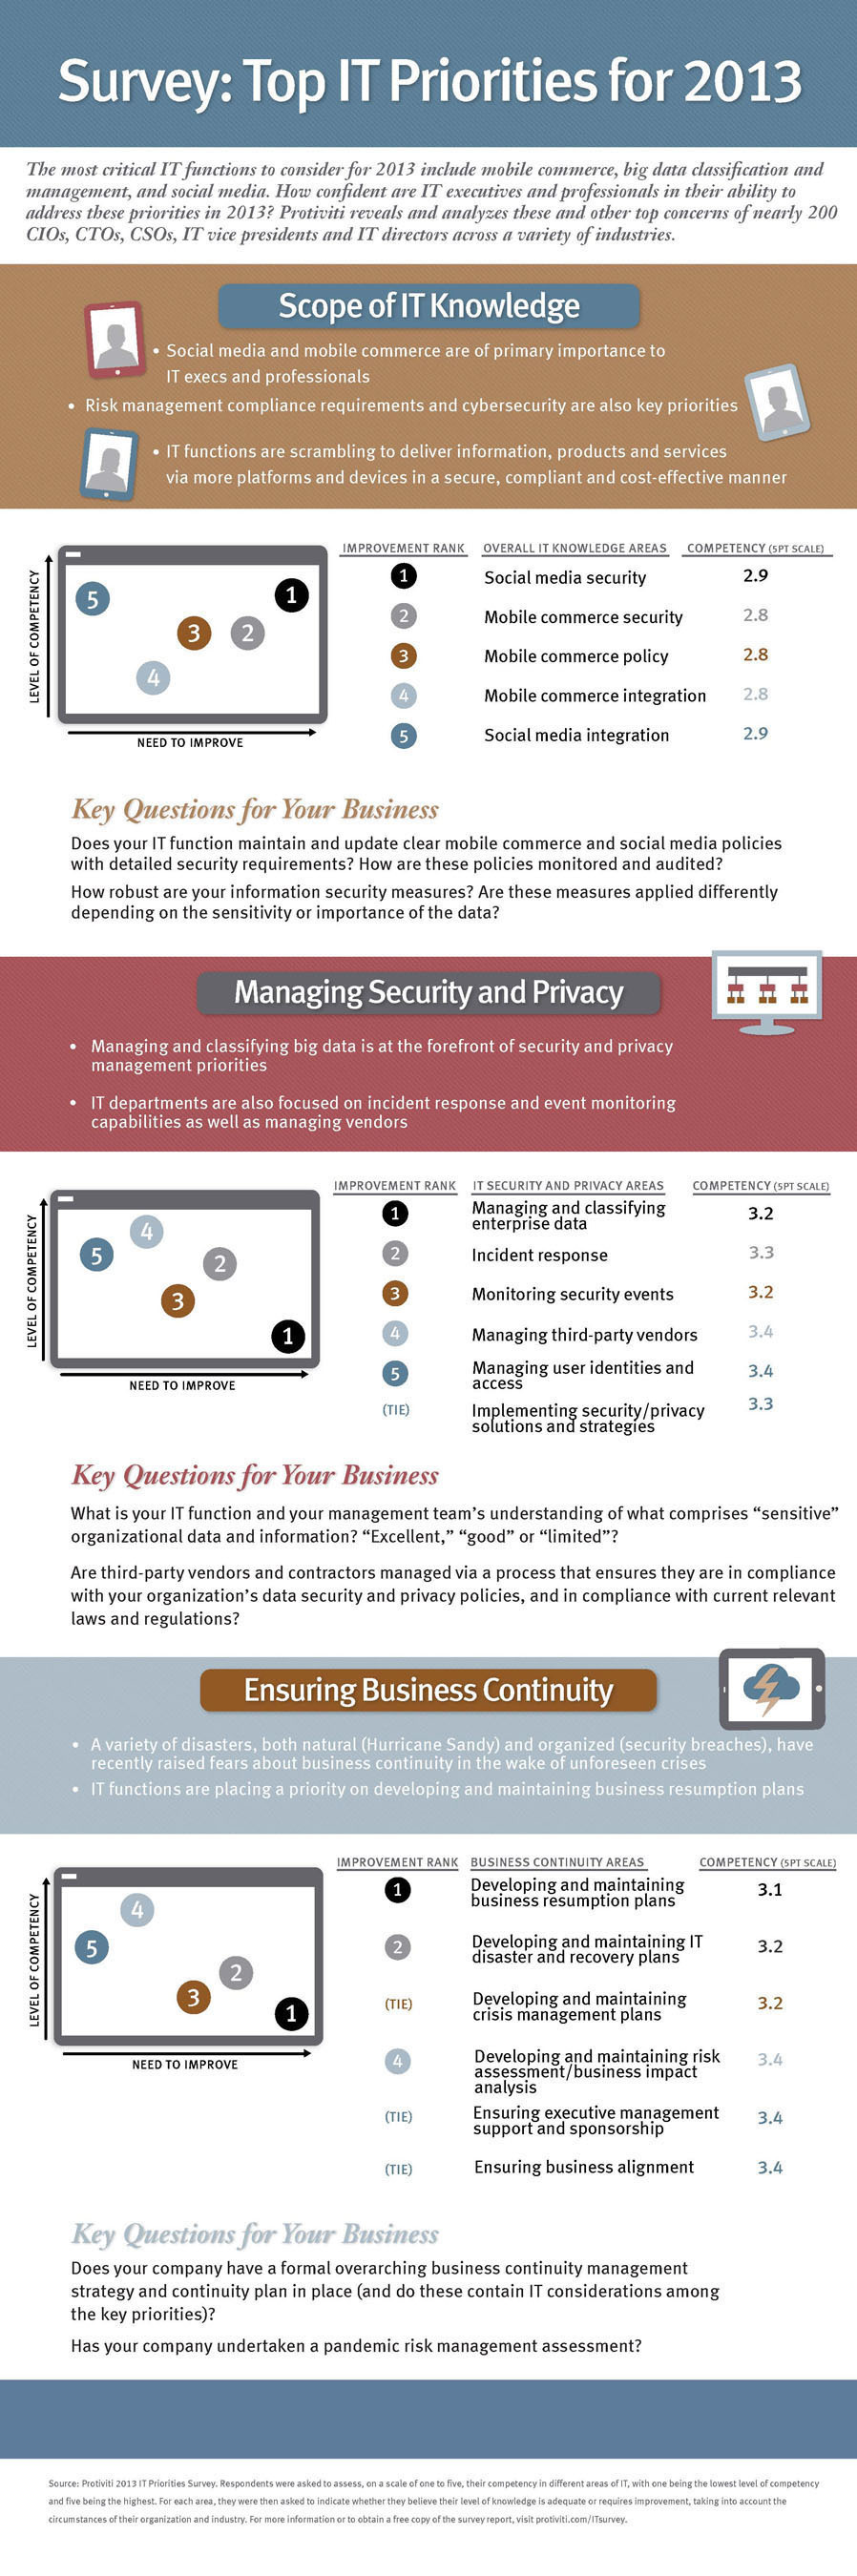 Protiviti Survey Finds Top Priorities for IT Departments in 2013 Driven by Concerns Surrounding